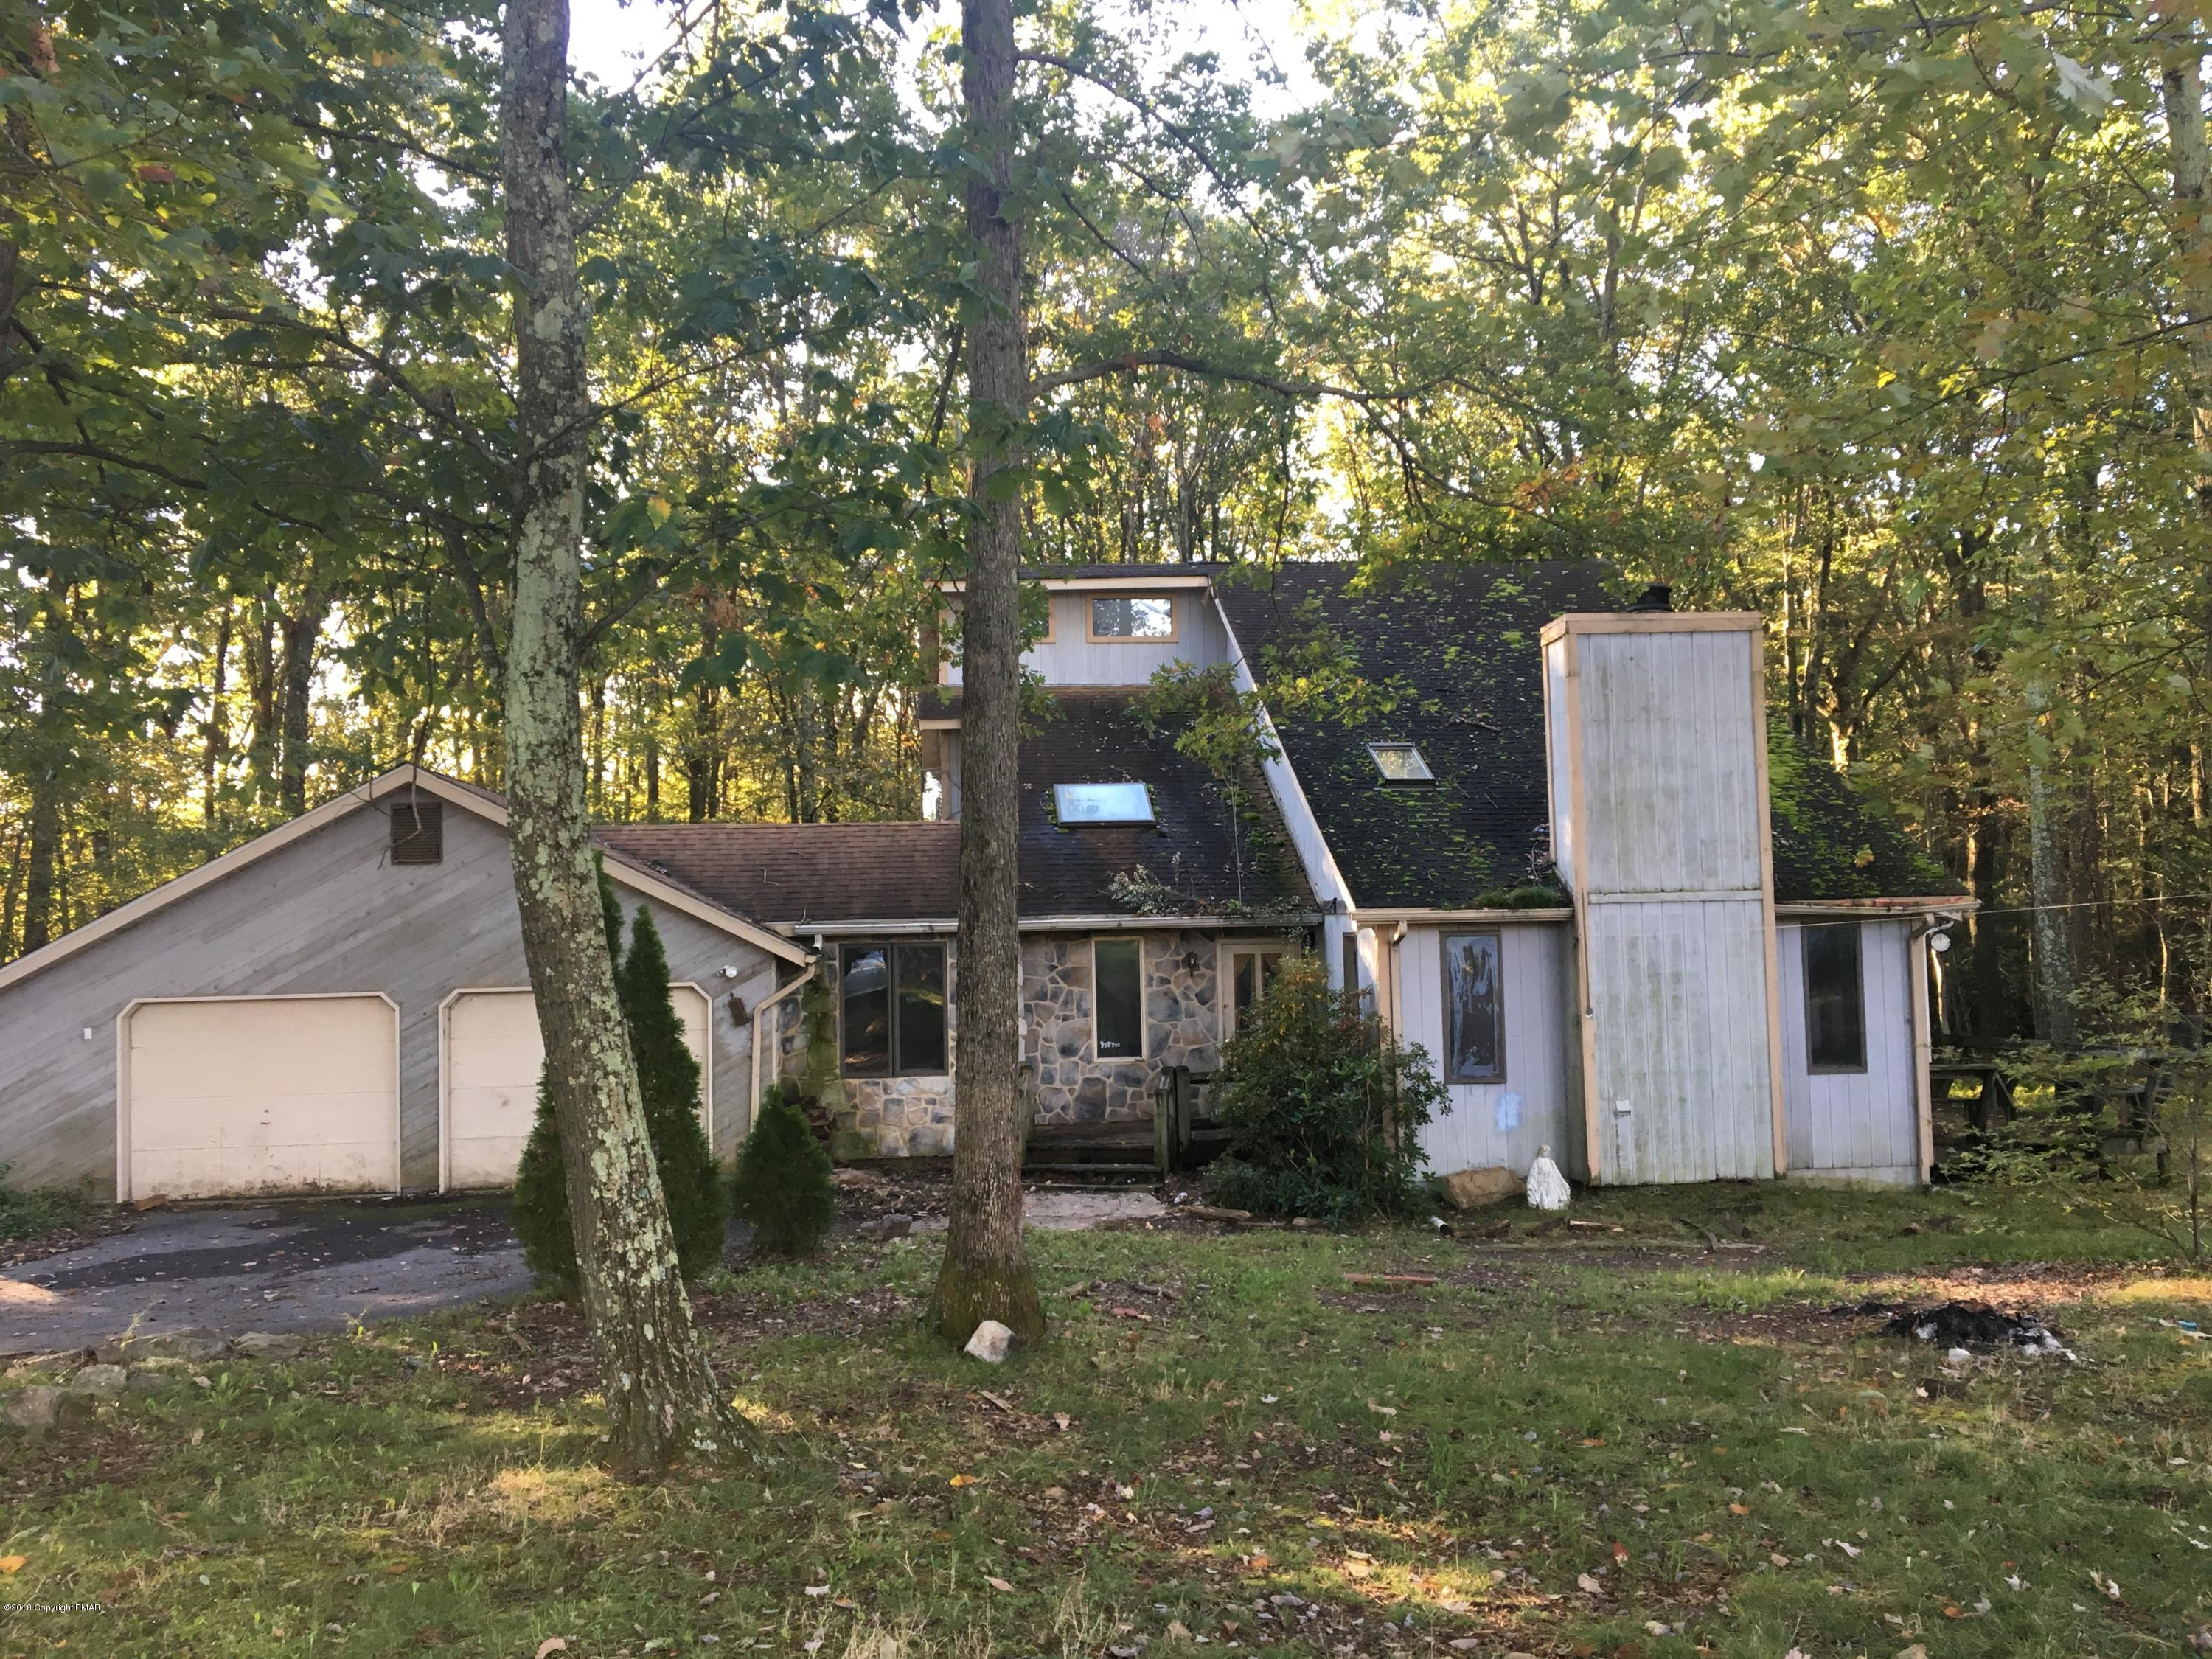 262 Mount Effort Dr, Effort, PA 18330